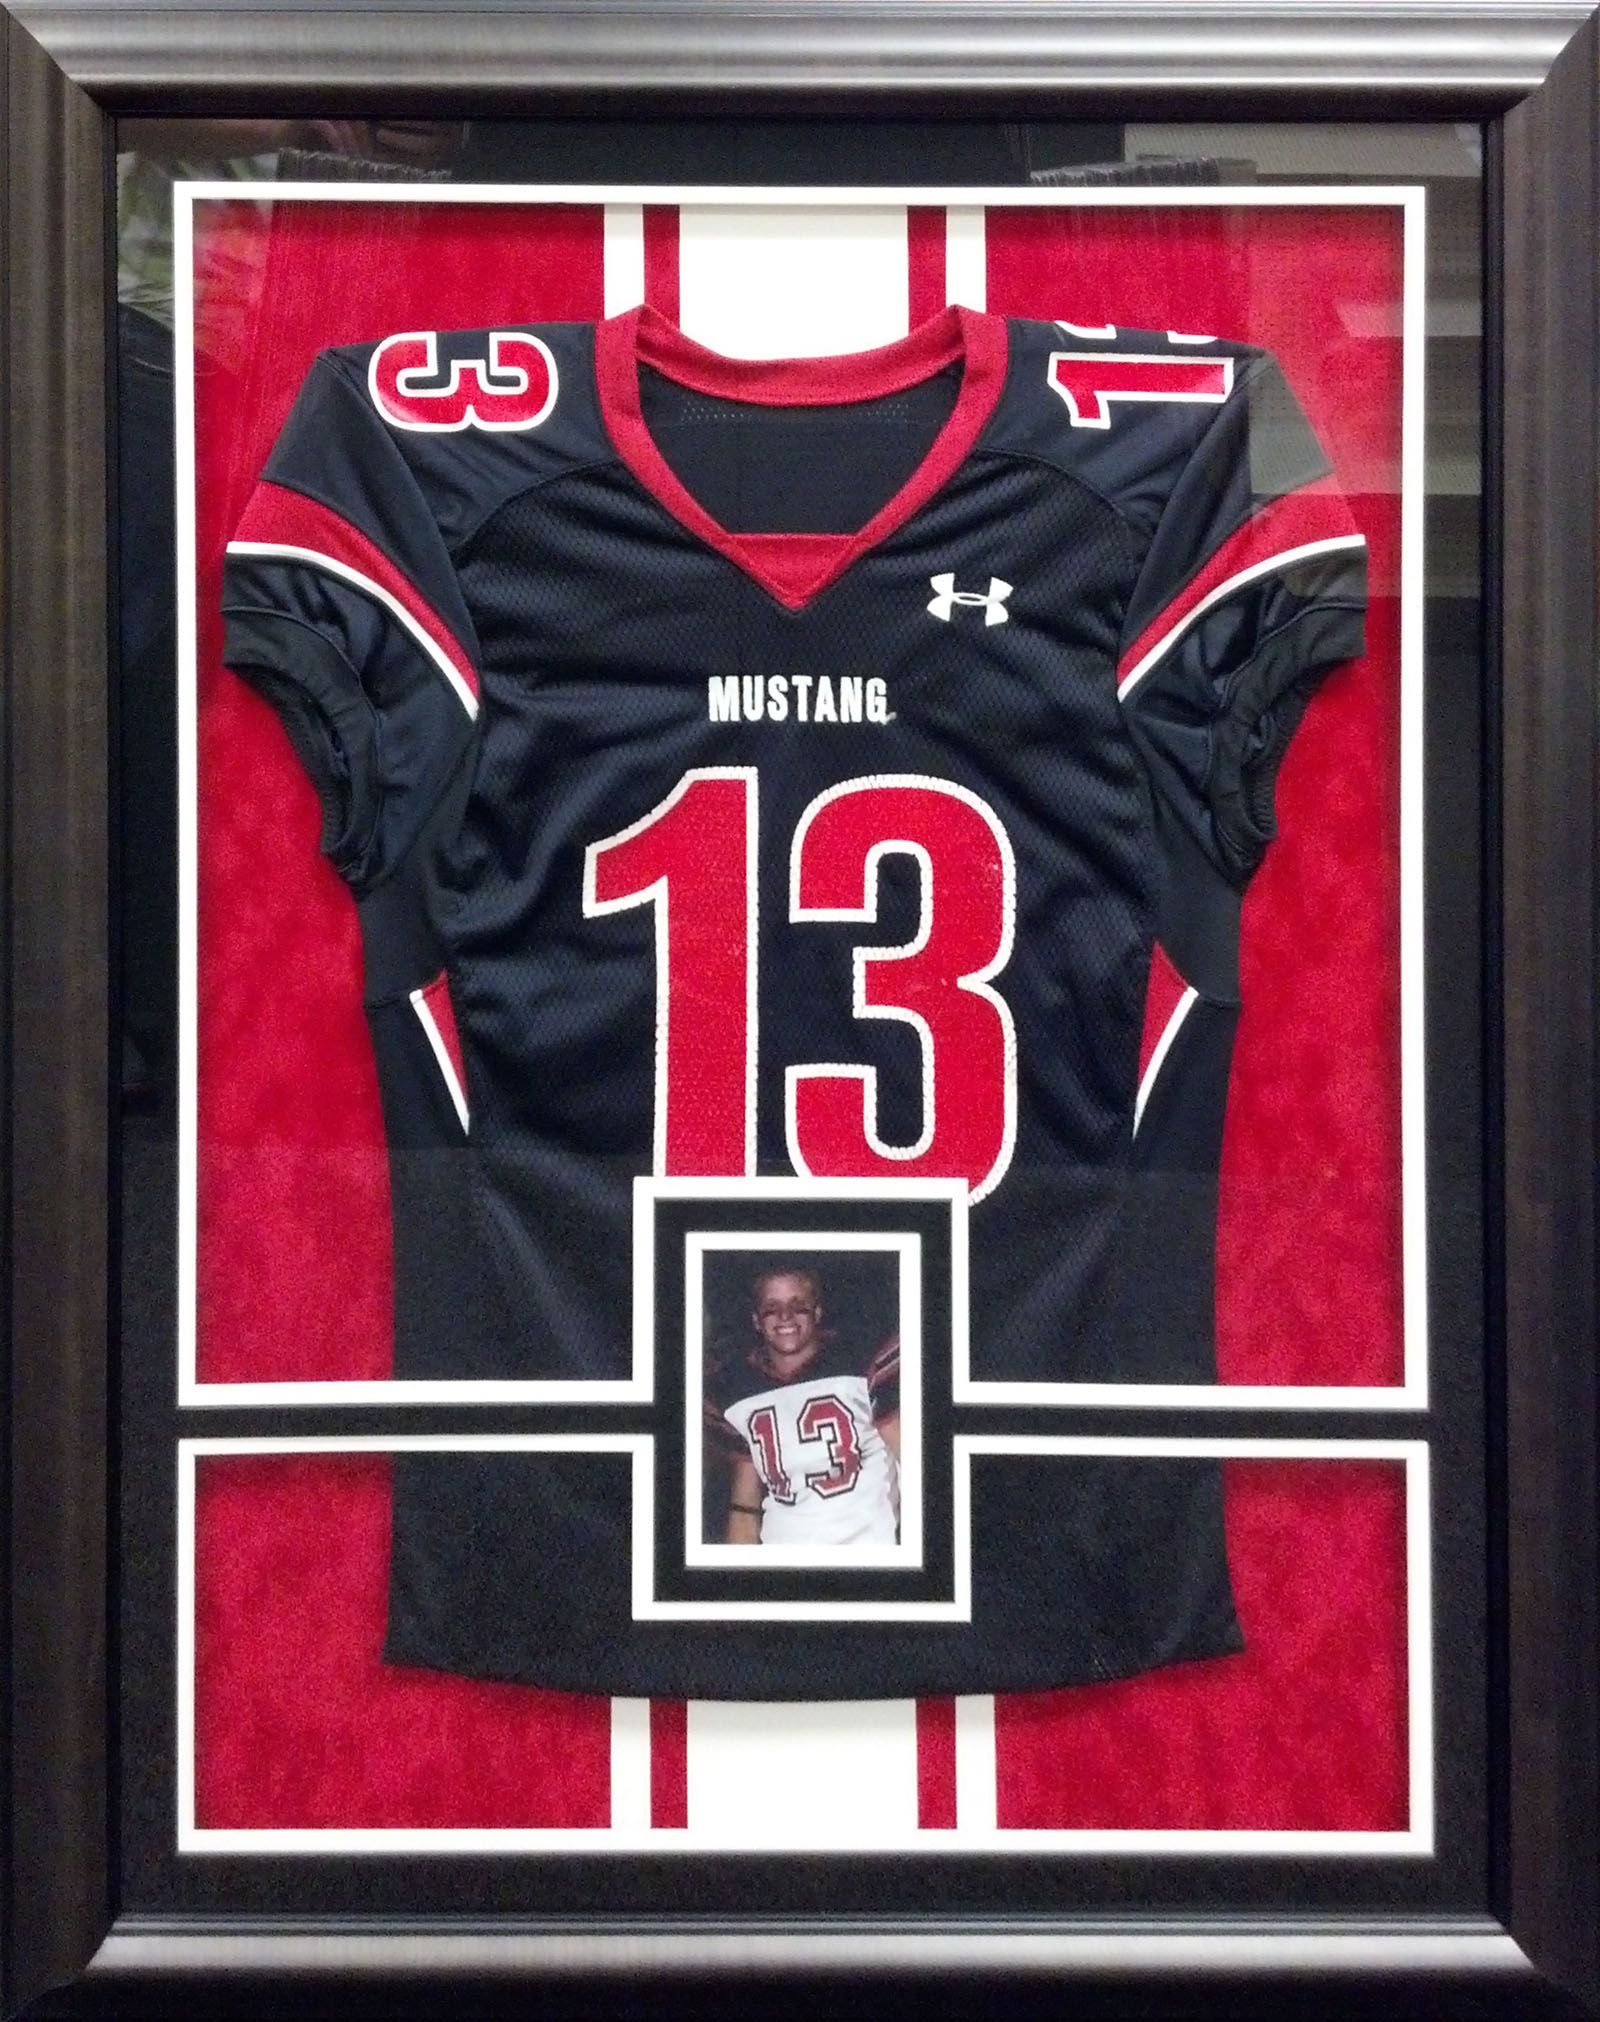 This football jersey is mounted on inlaid mats and is completely this football jersey is mounted on inlaid mats and is completely reversible our custom framing departments can mount jerseys and other sports memorabilia solutioingenieria Choice Image